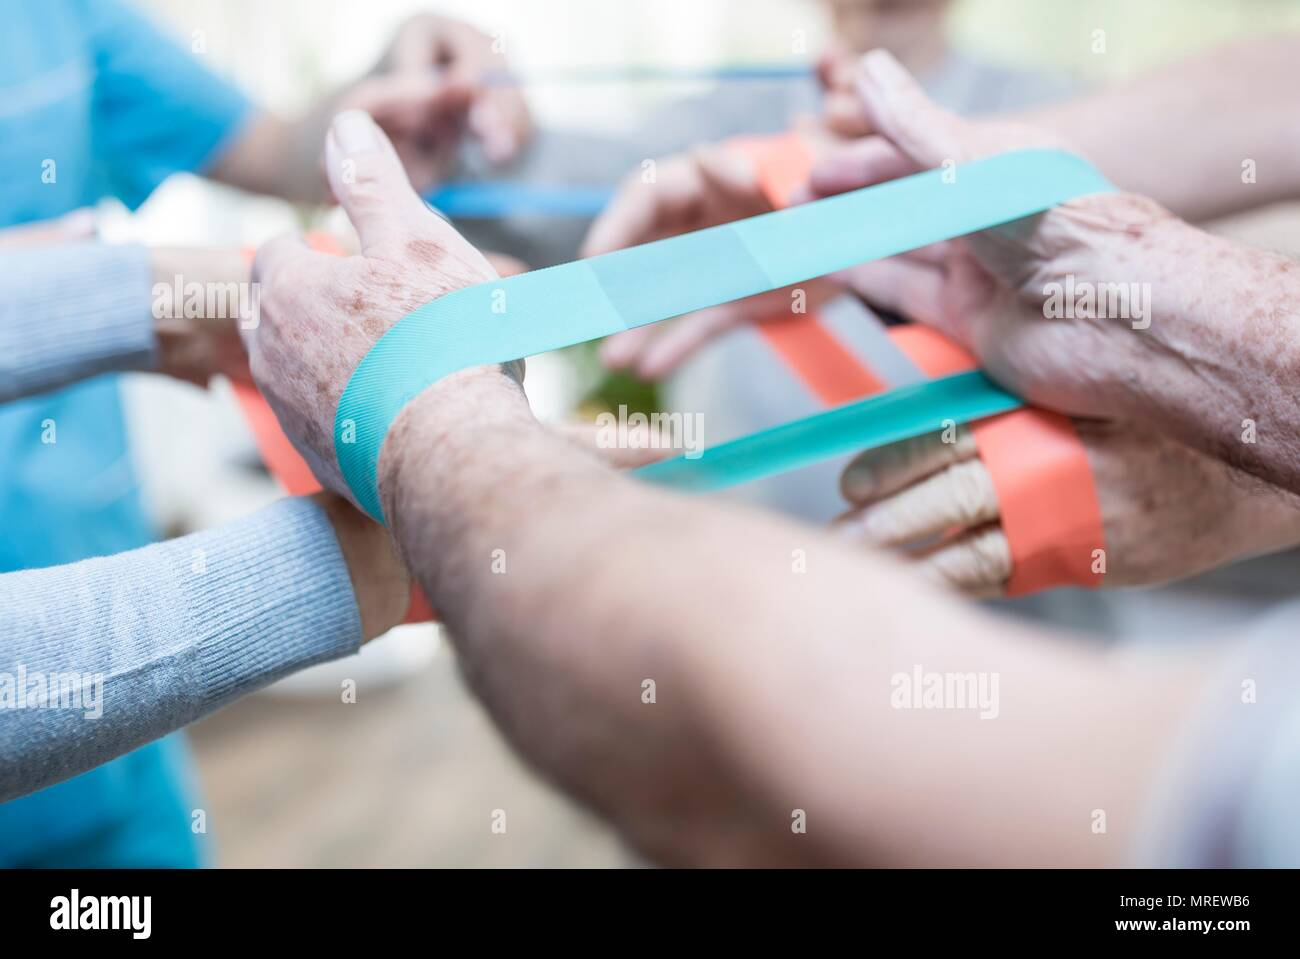 Close up of senior adults using resistance bands in exercise class. - Stock Image